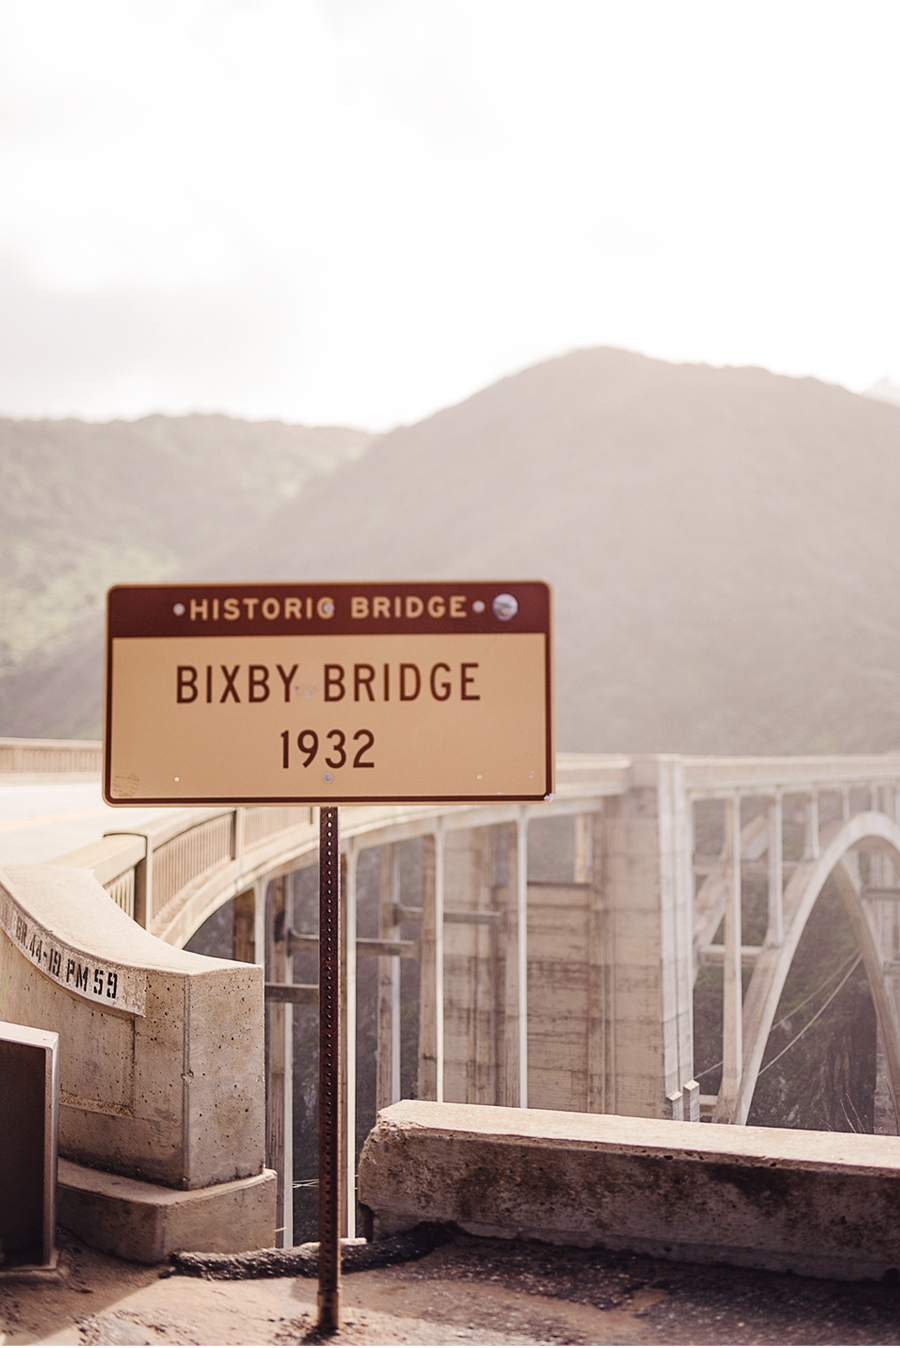 79ideas_bixby_bridge_sign_portrait